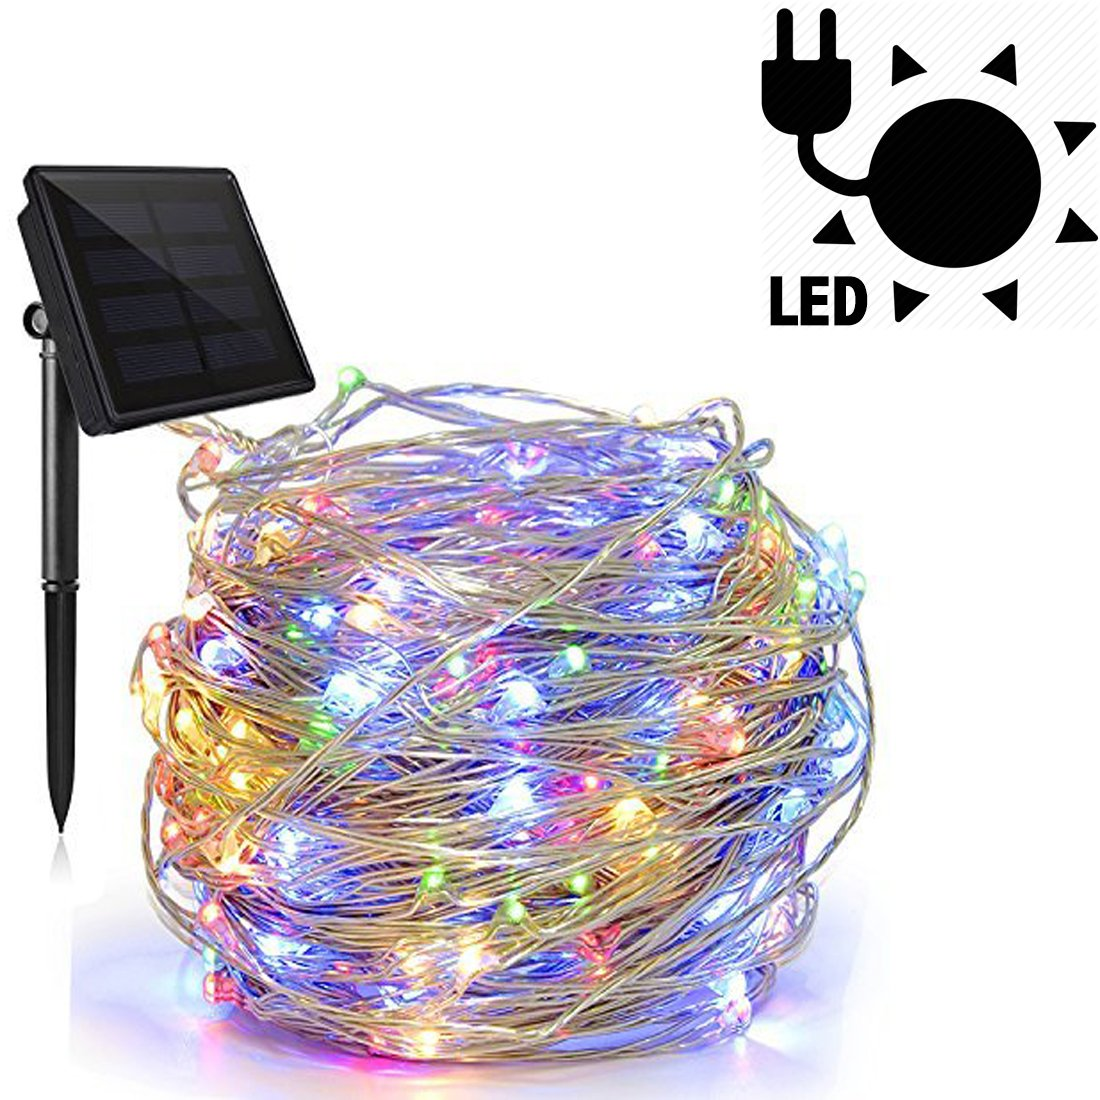 DIFEN Solar Powered String Lights, 72ft 22m 200 LED 8 Modes, Starry String Lights, Indoor/Outdoor Waterproof Solar Decoration Lights for Gardens, Home, Party Decorative (Multicolor-A - Solar Power)